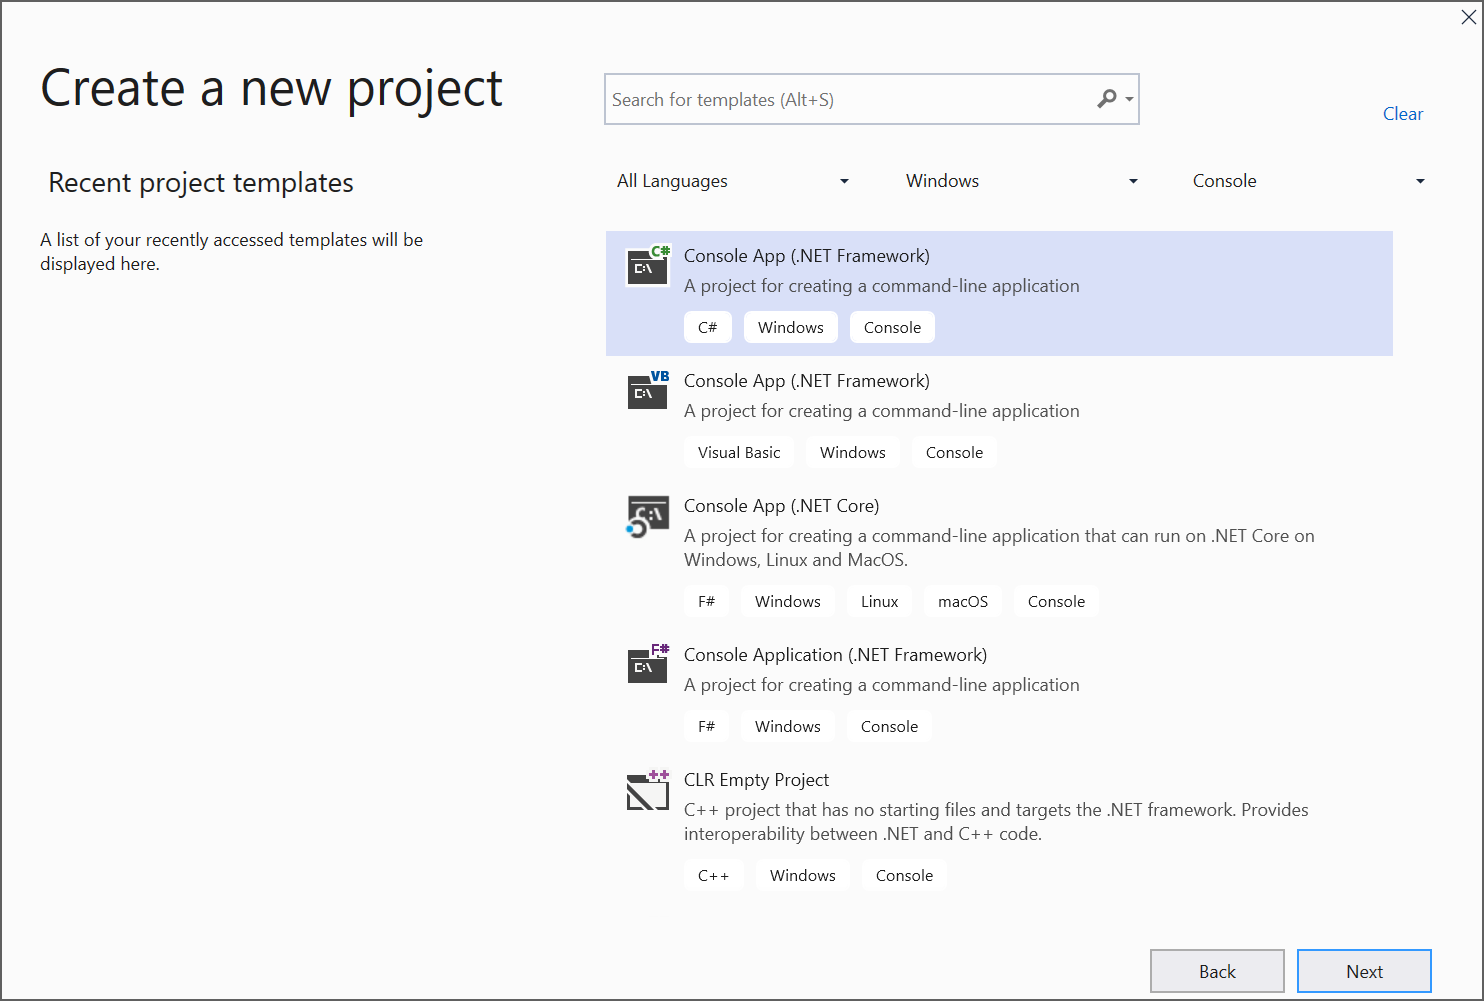 Create a new C# console application project